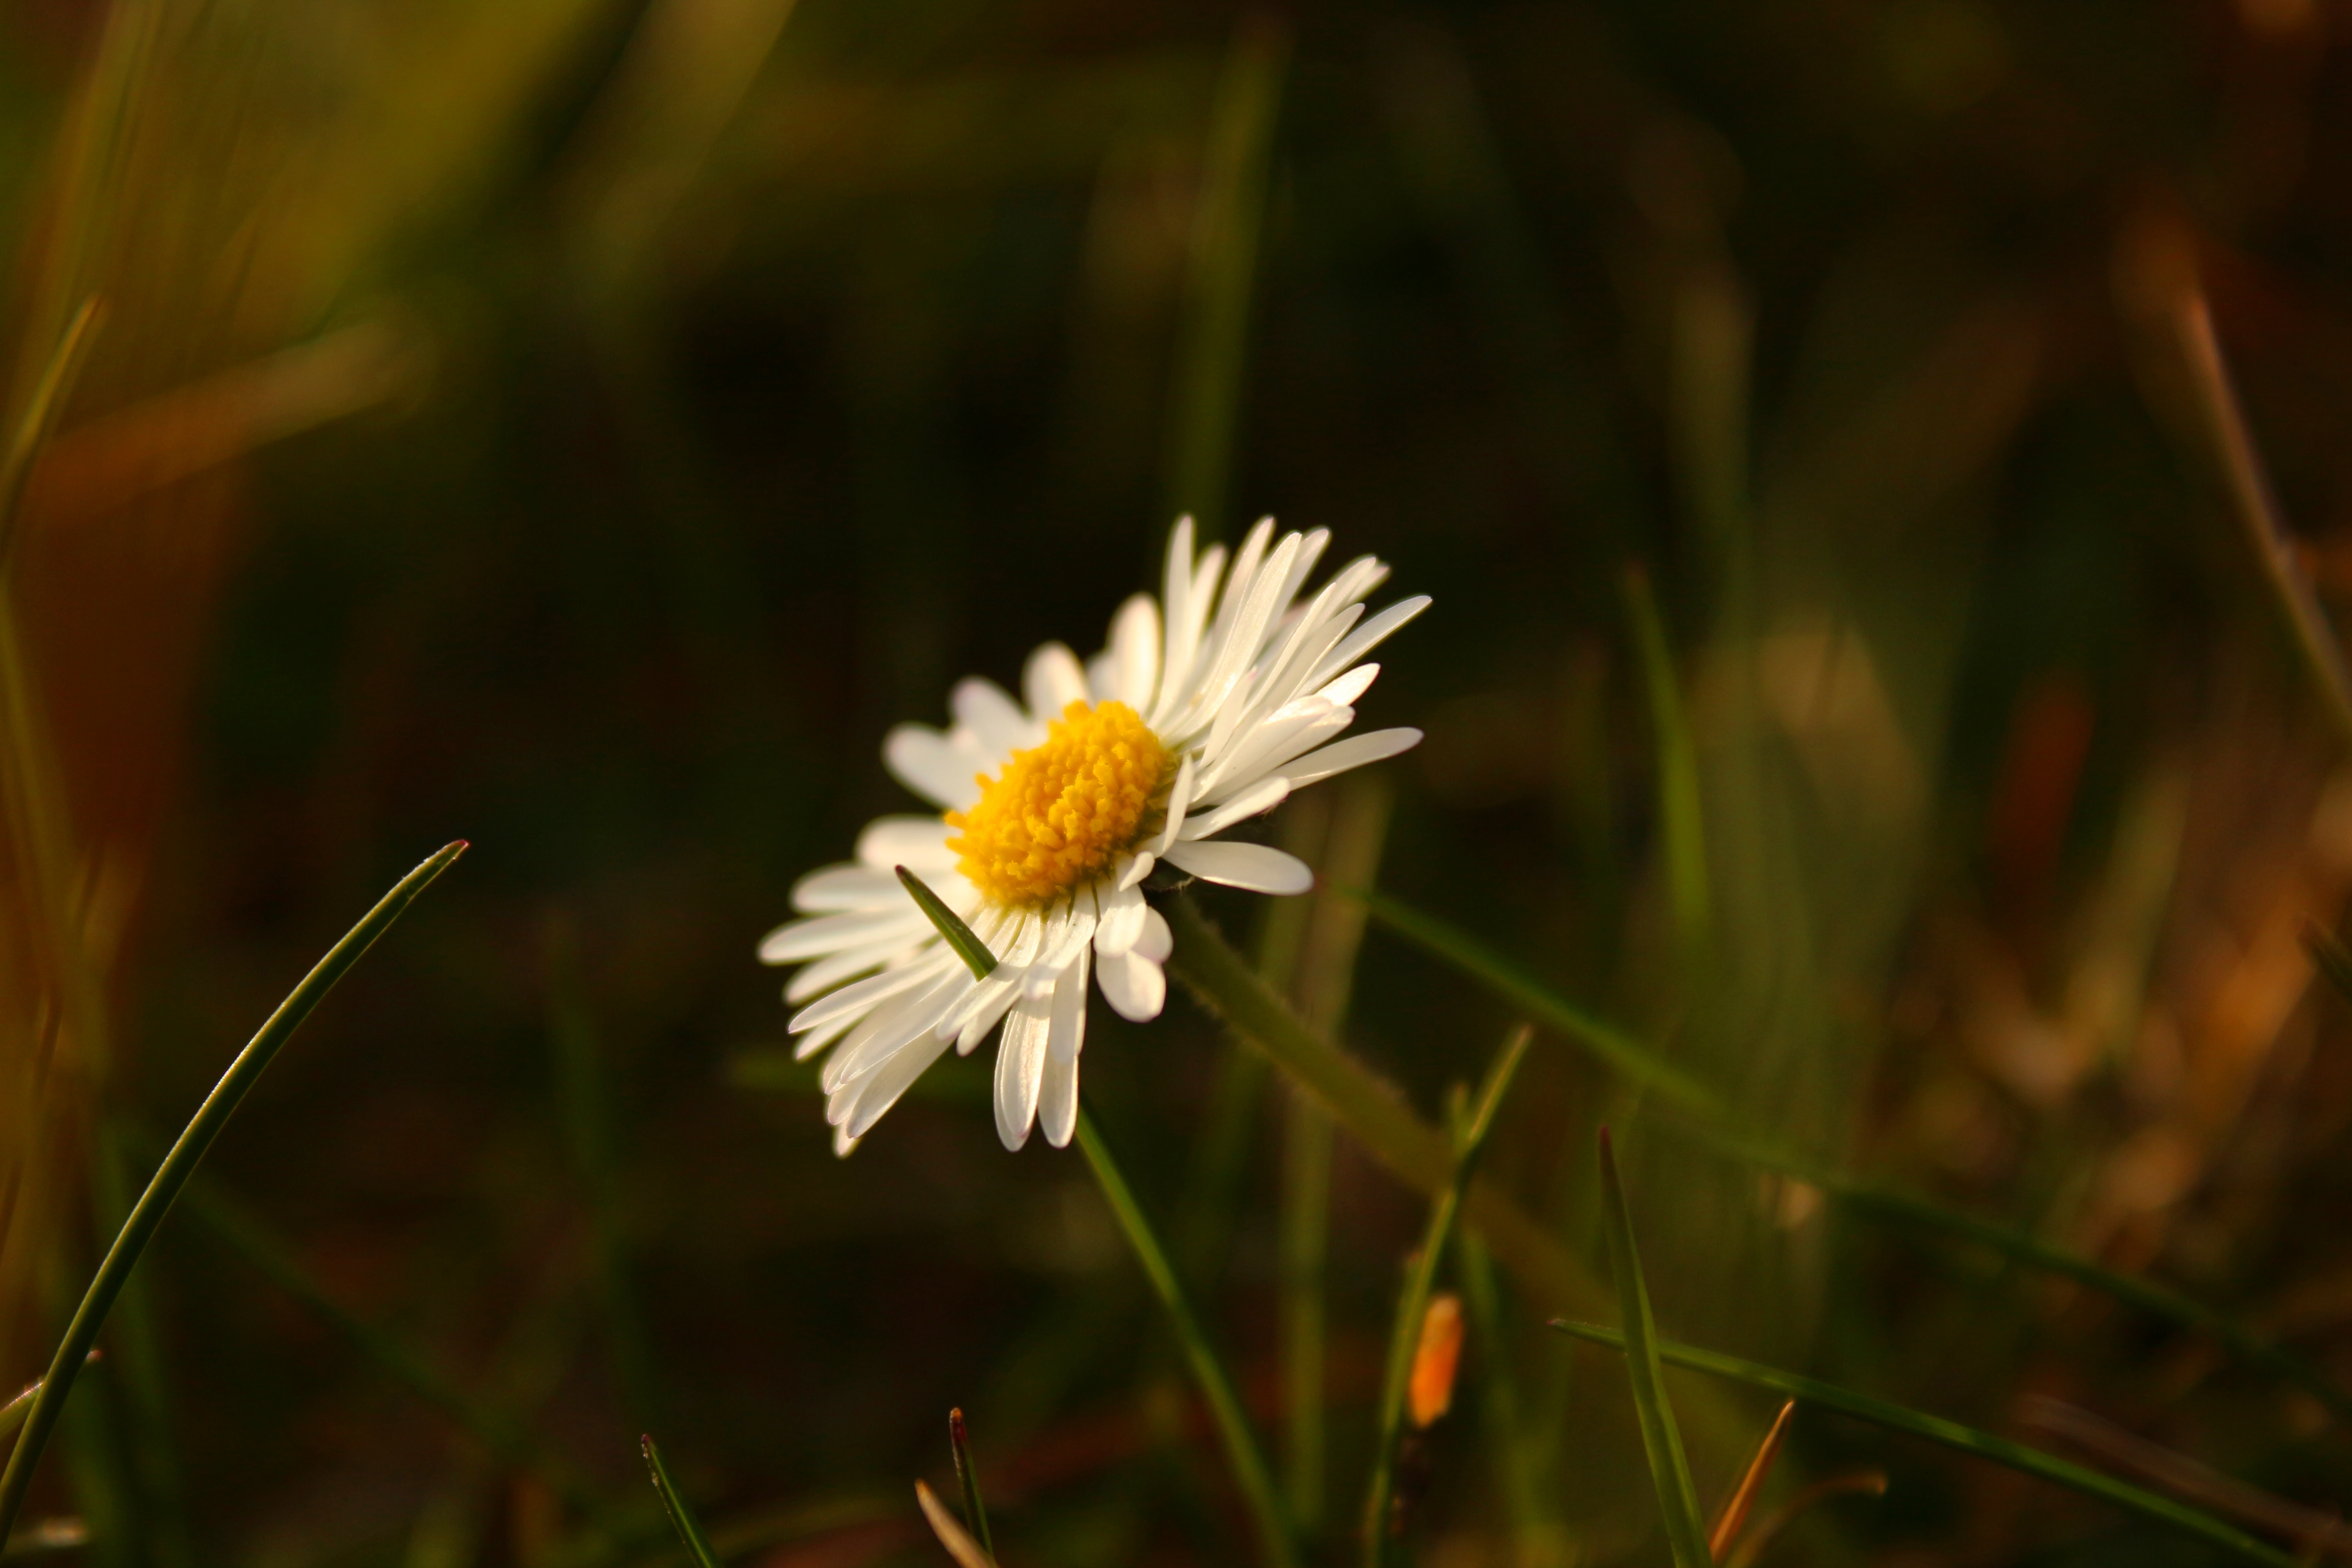 Daisy in sunset II by LoveForDetails